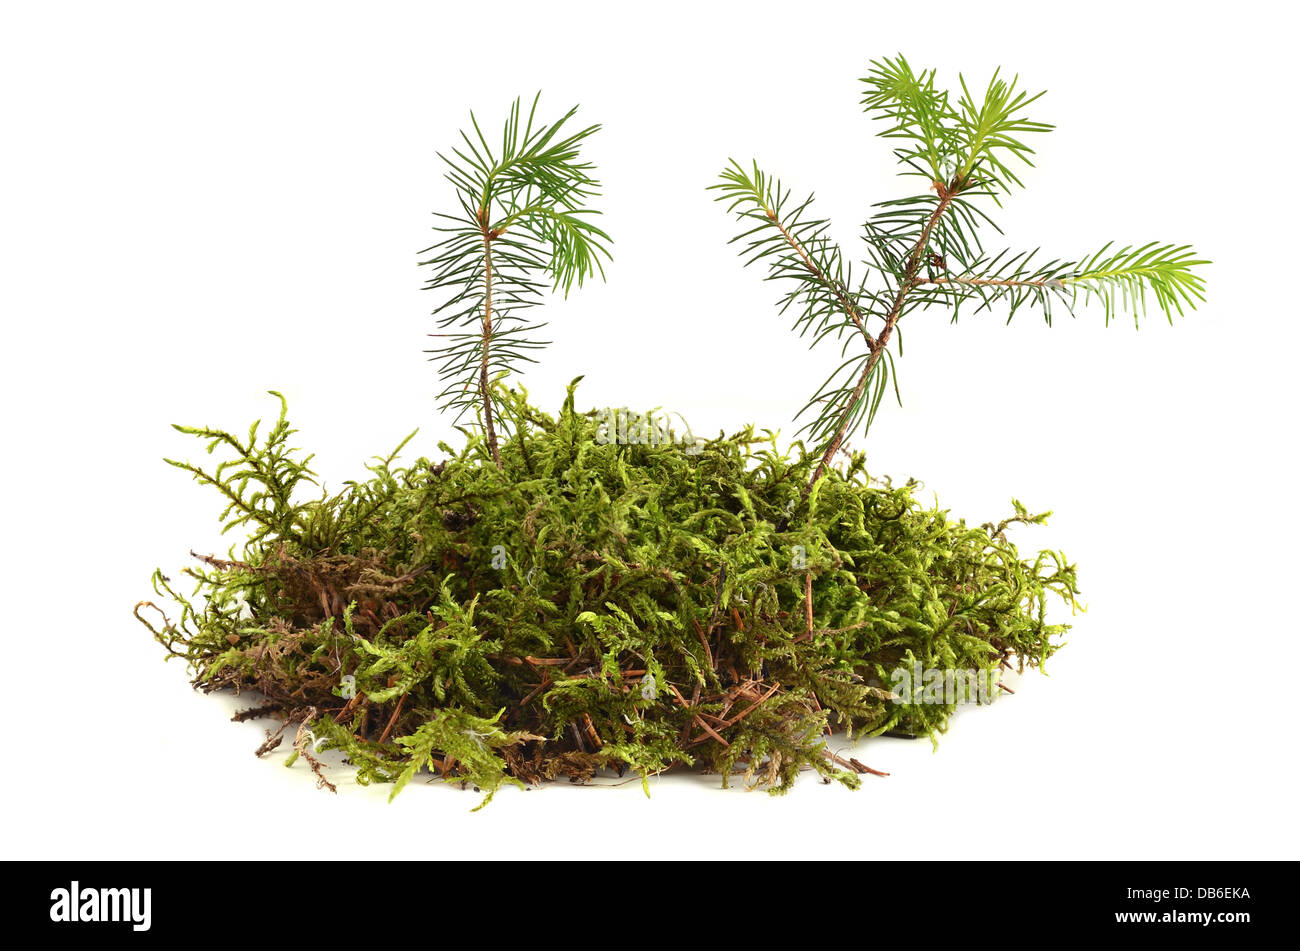 Two young fir trees growthing in moss on a white background Stock Photo